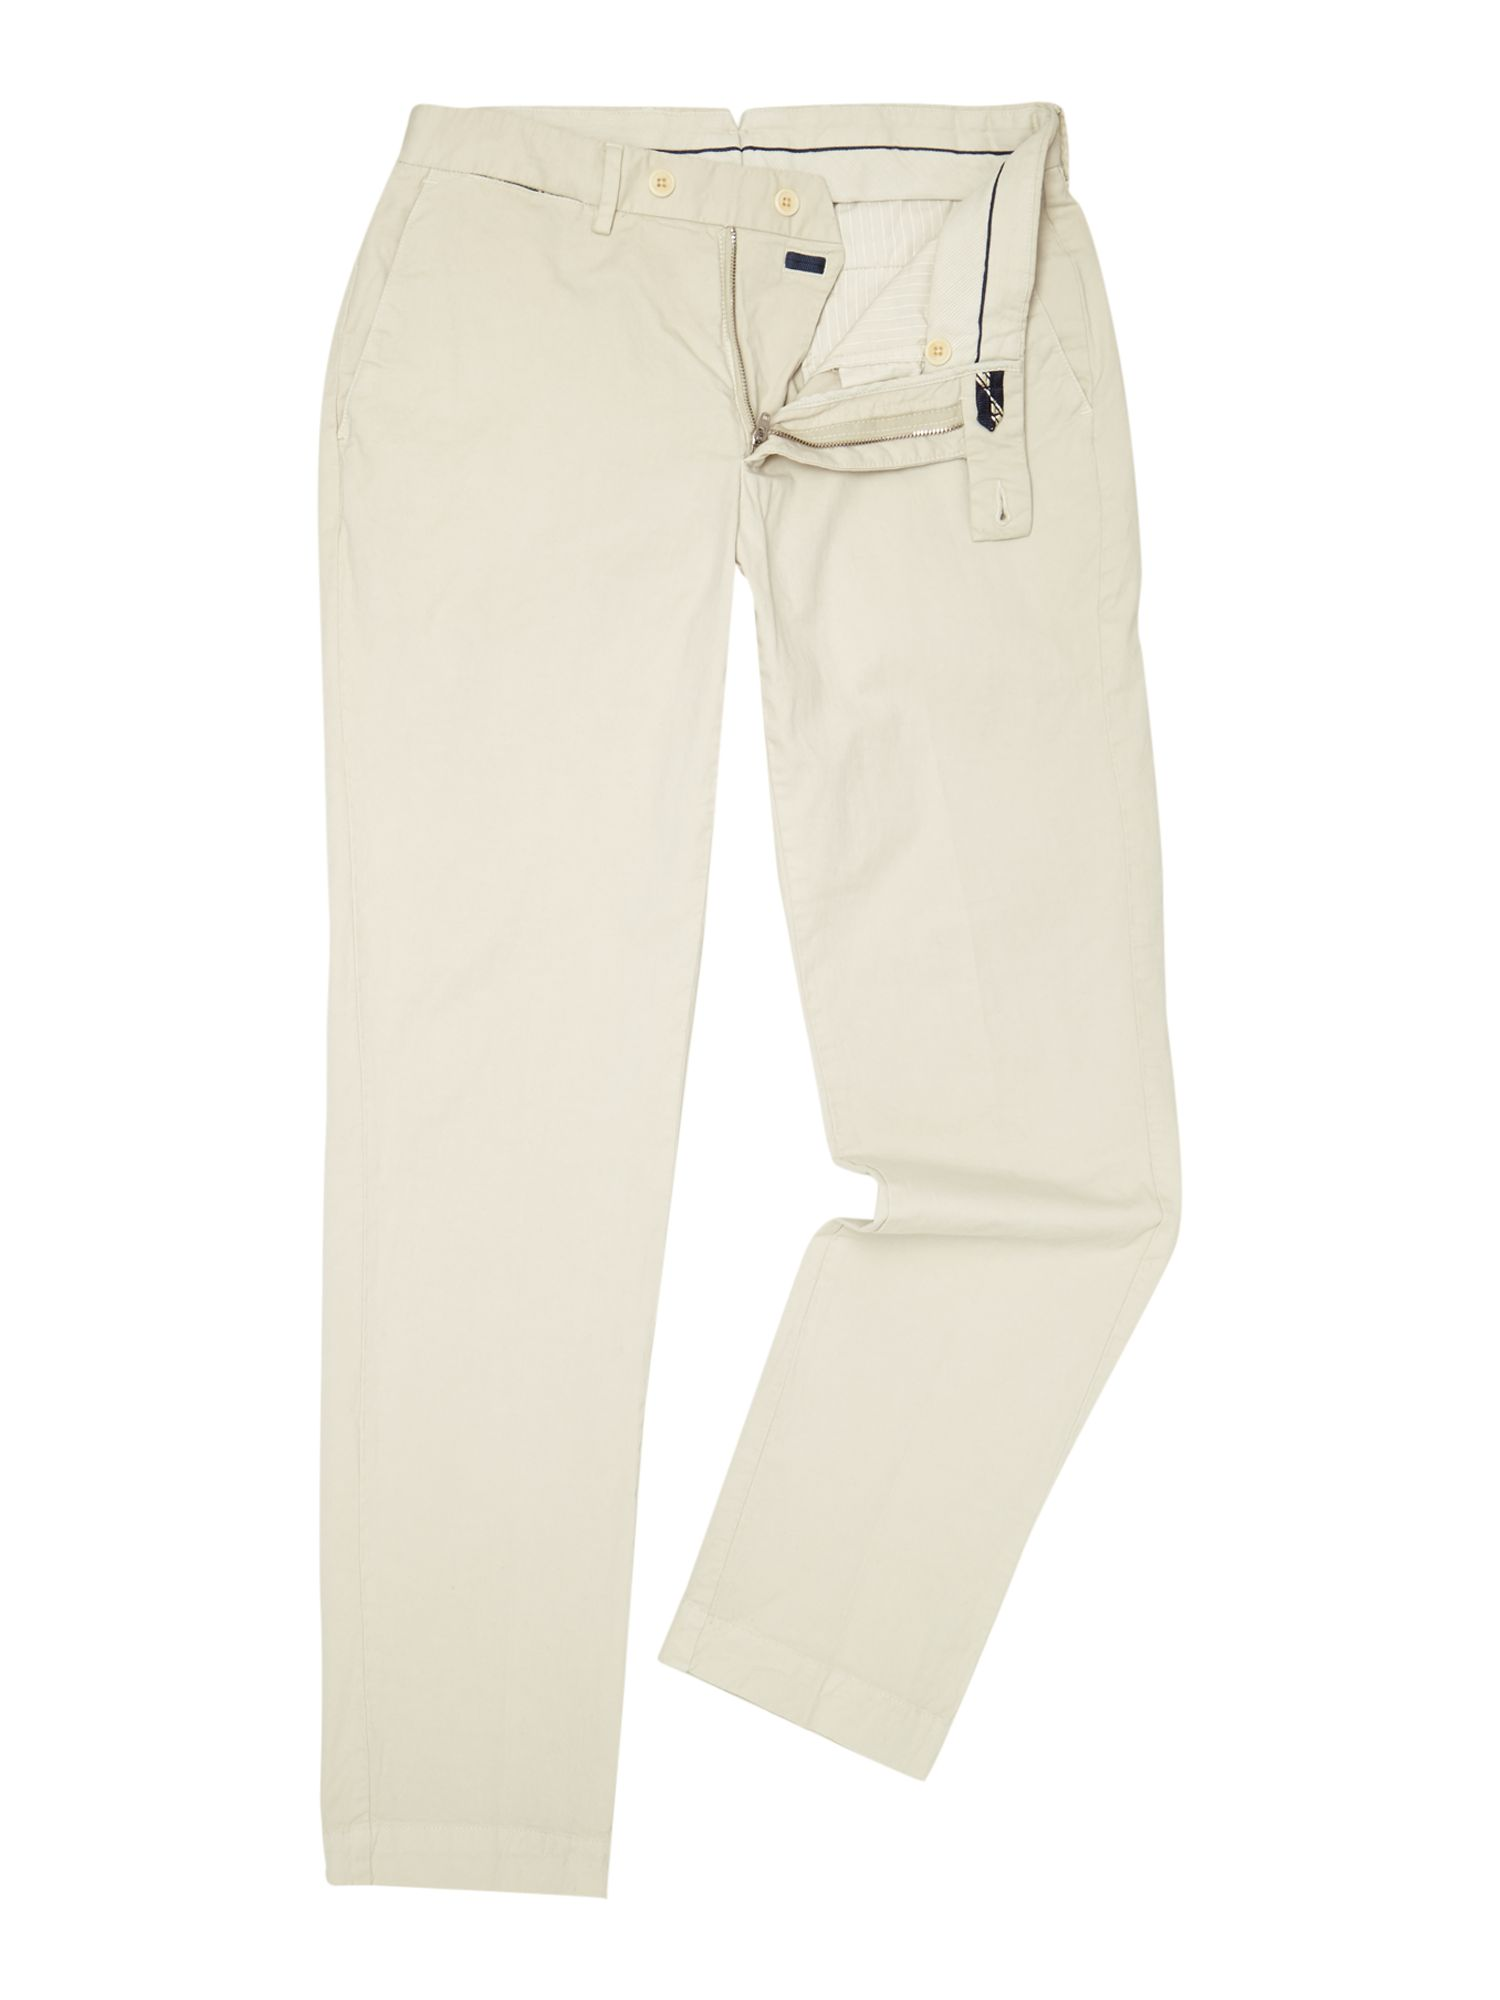 Kensington twill chinos